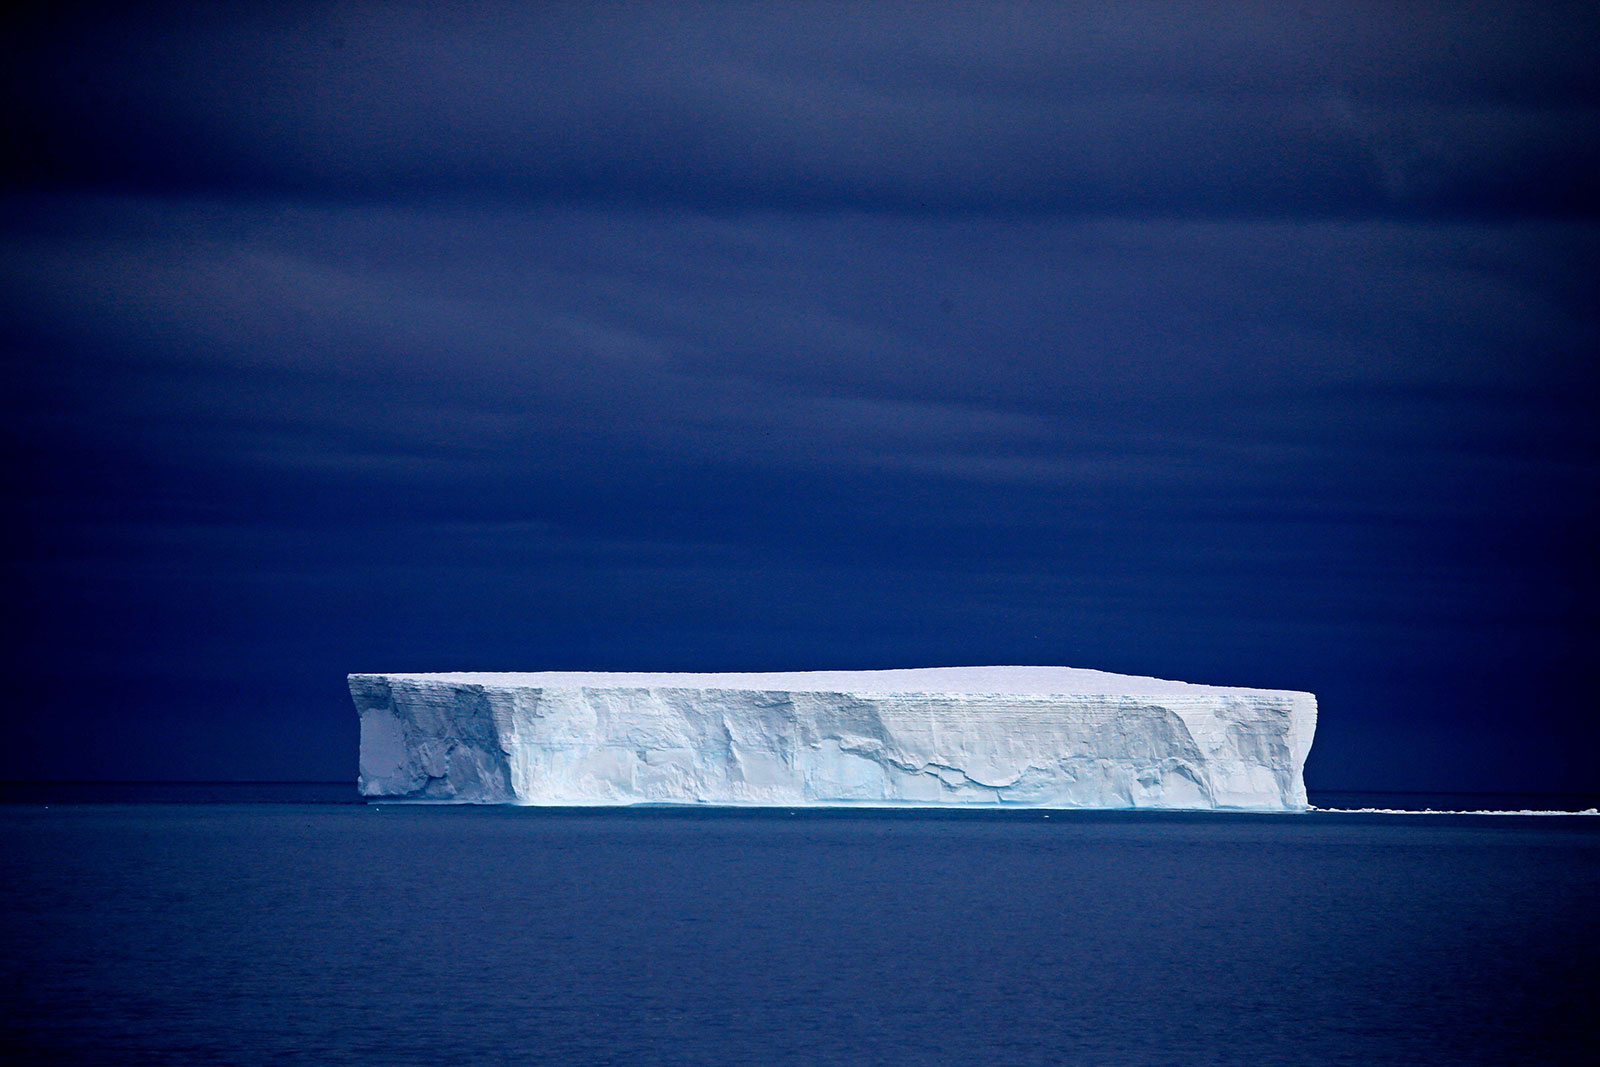 Tabular iceberg - Photo credit: passenger: lijishan